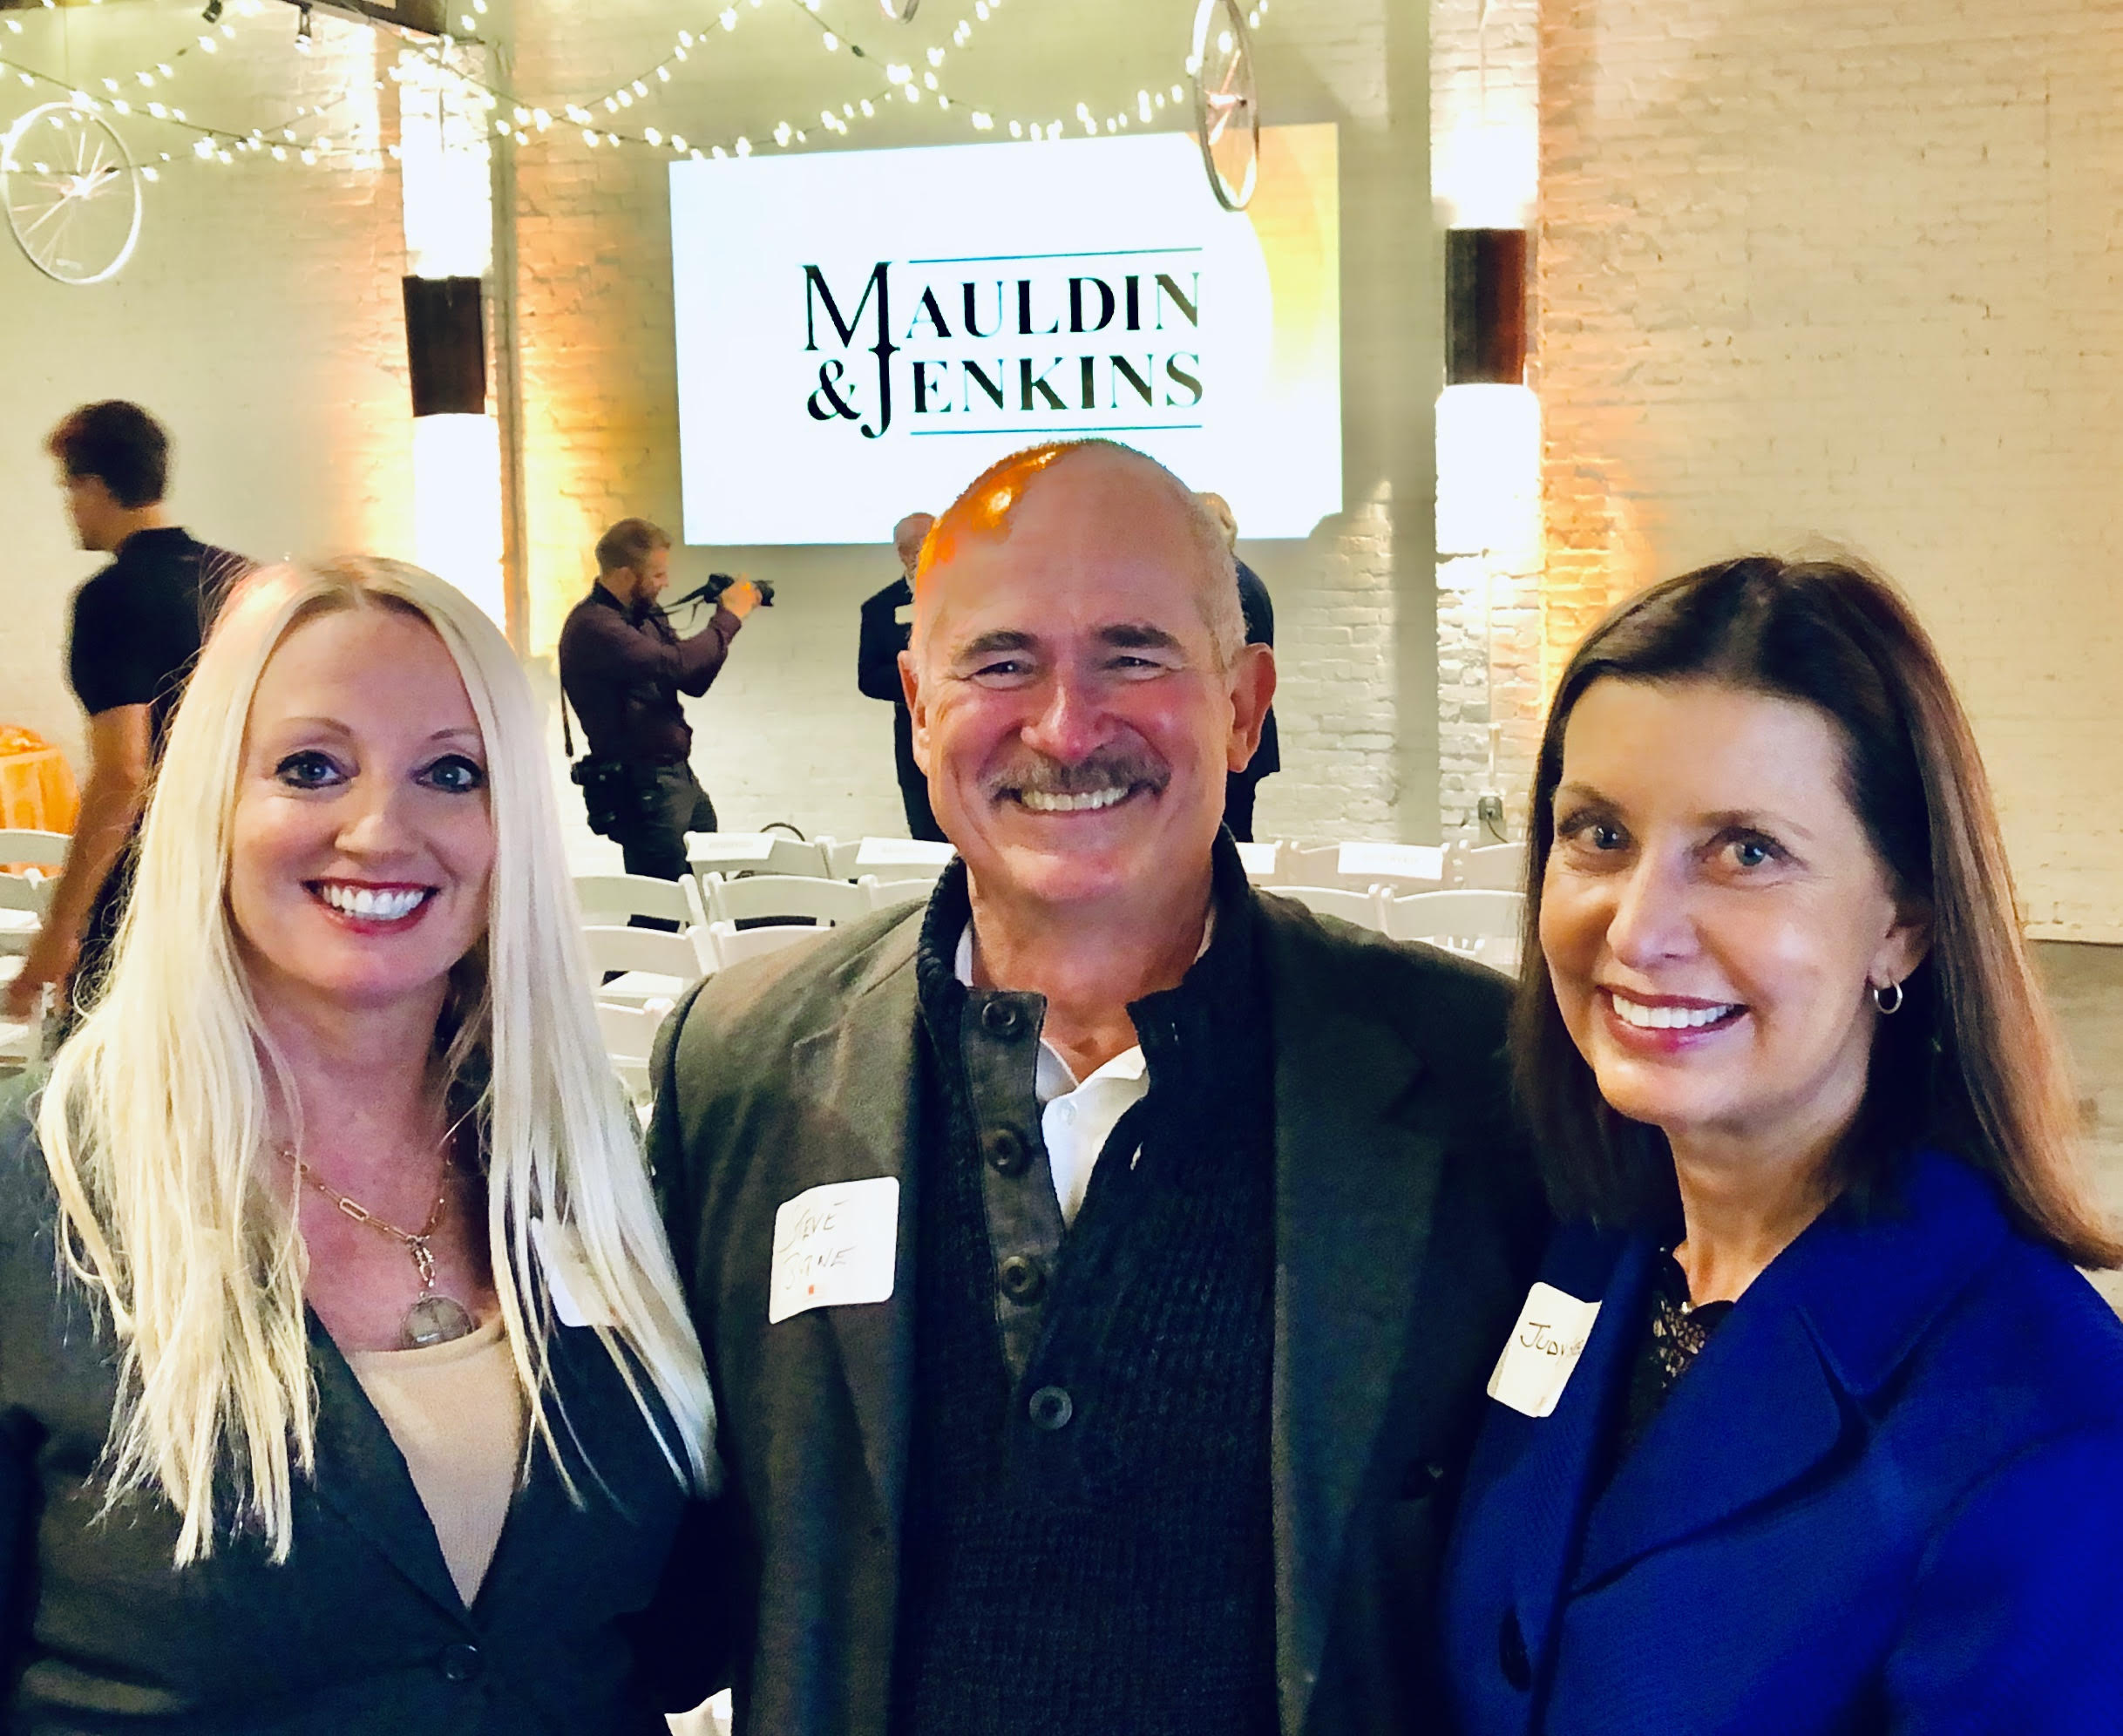 Mauldin & Jenkins Proud Sponsor of the 27th Annual Cobb Travel & Tourism Meeting & Mixer